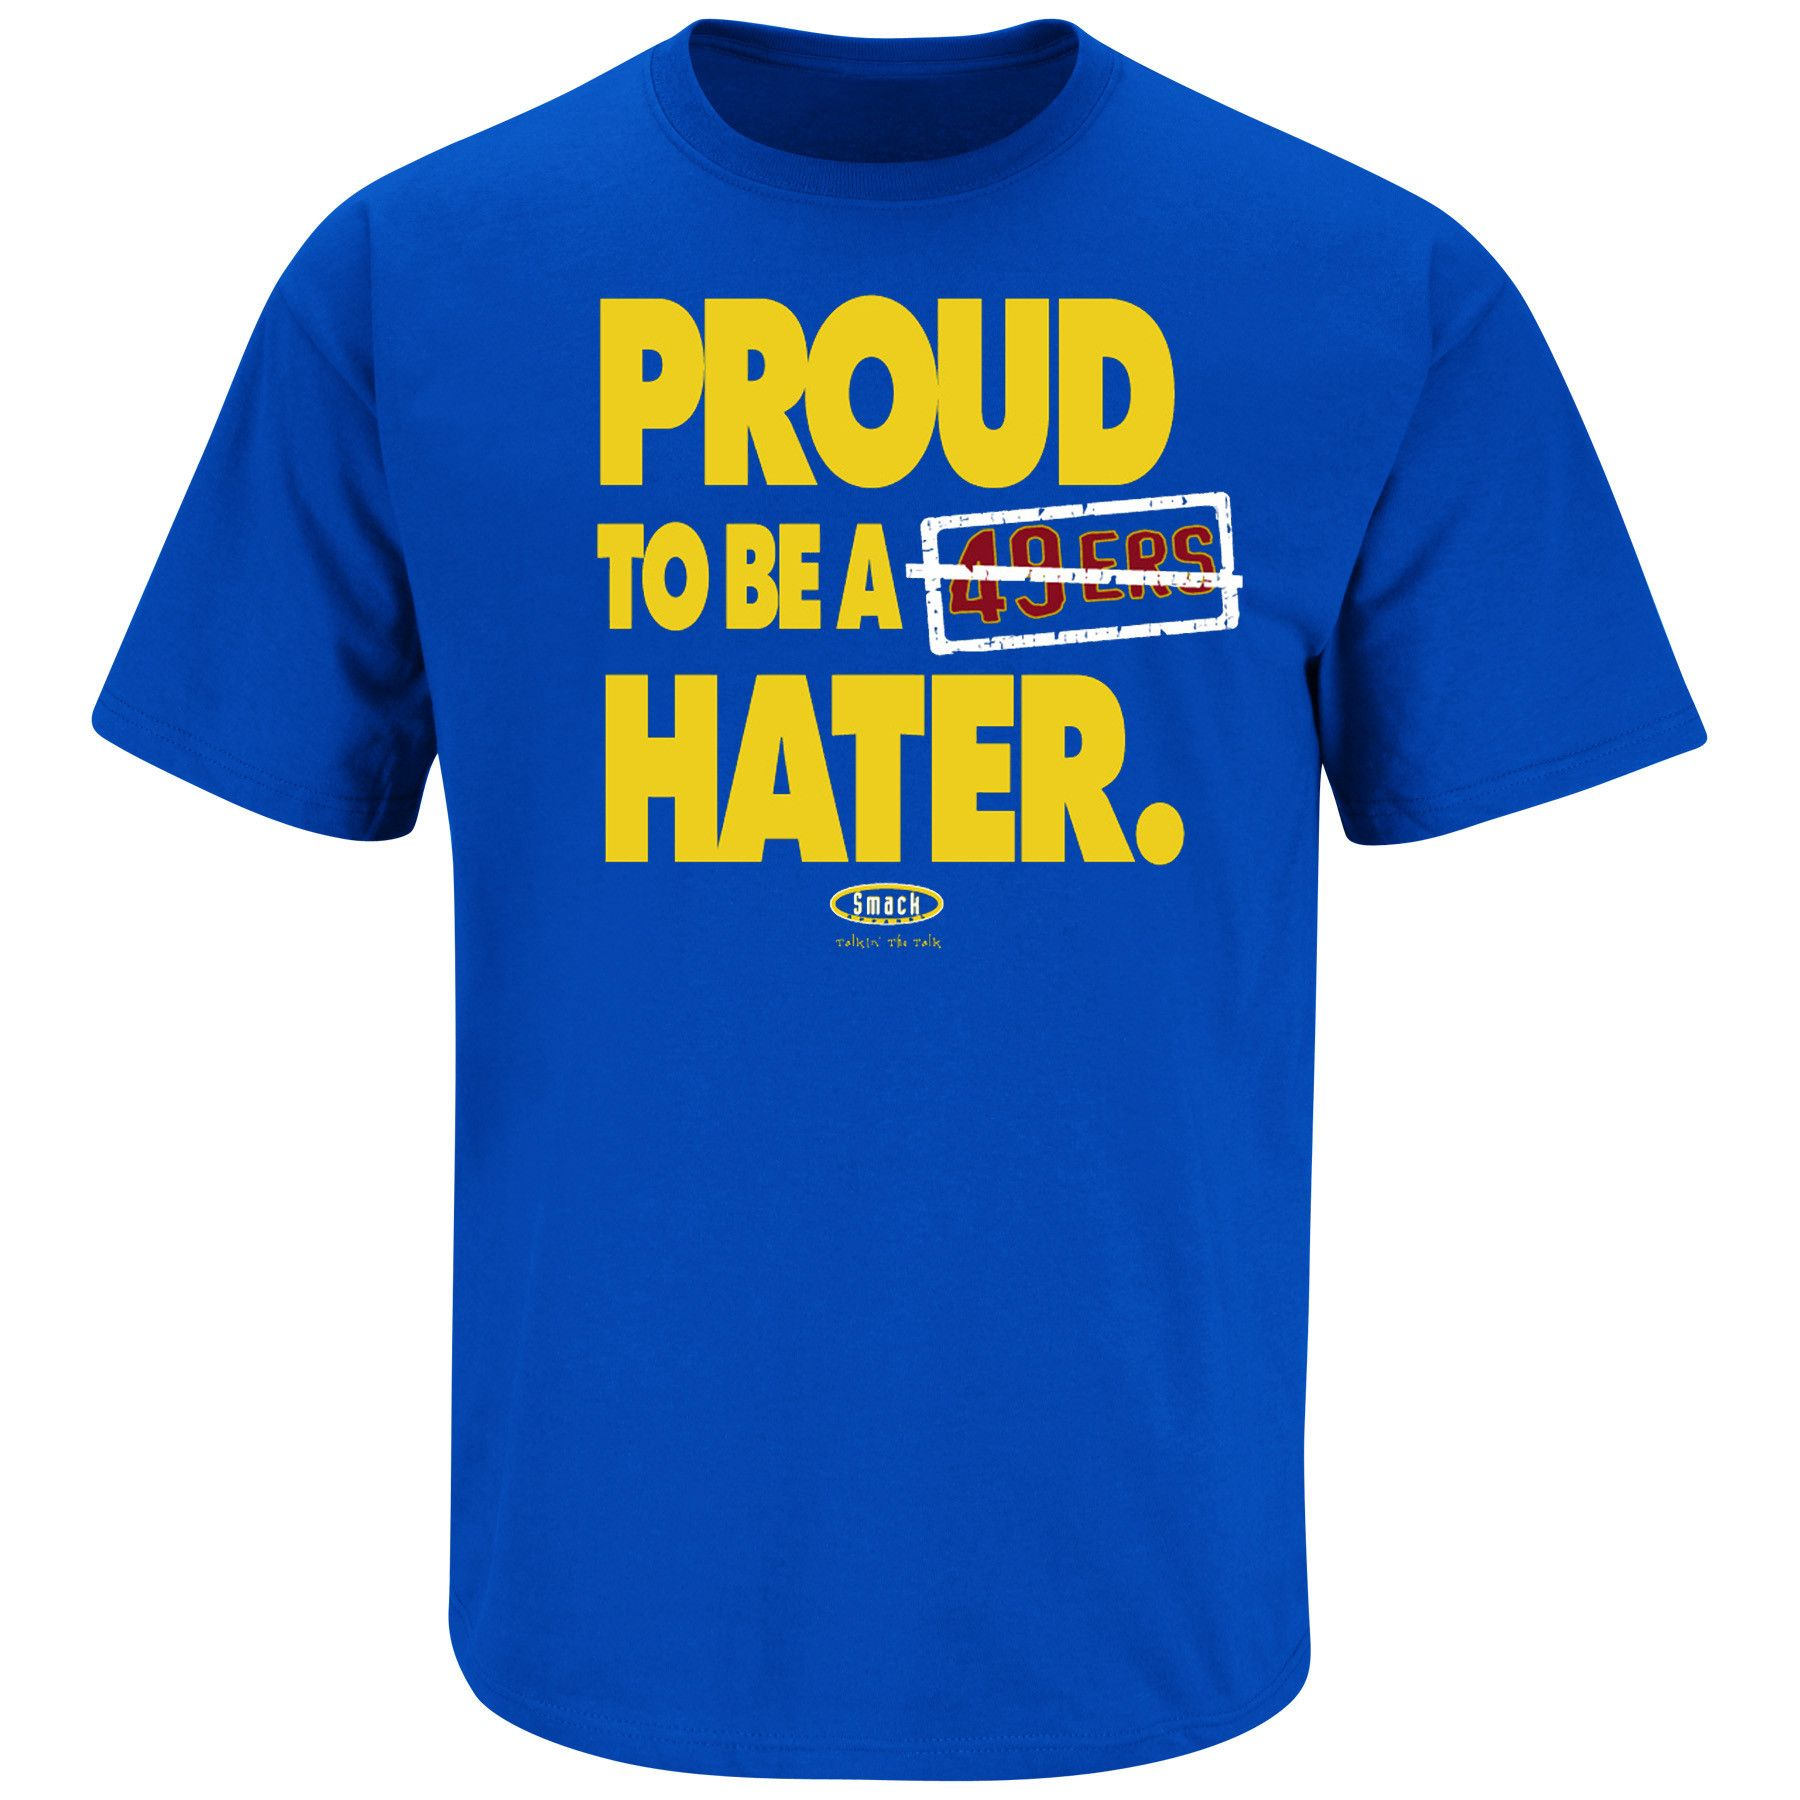 01b61cea7 Los Angeles Fans. Proud to be a 49ers Hater. T-Shirt